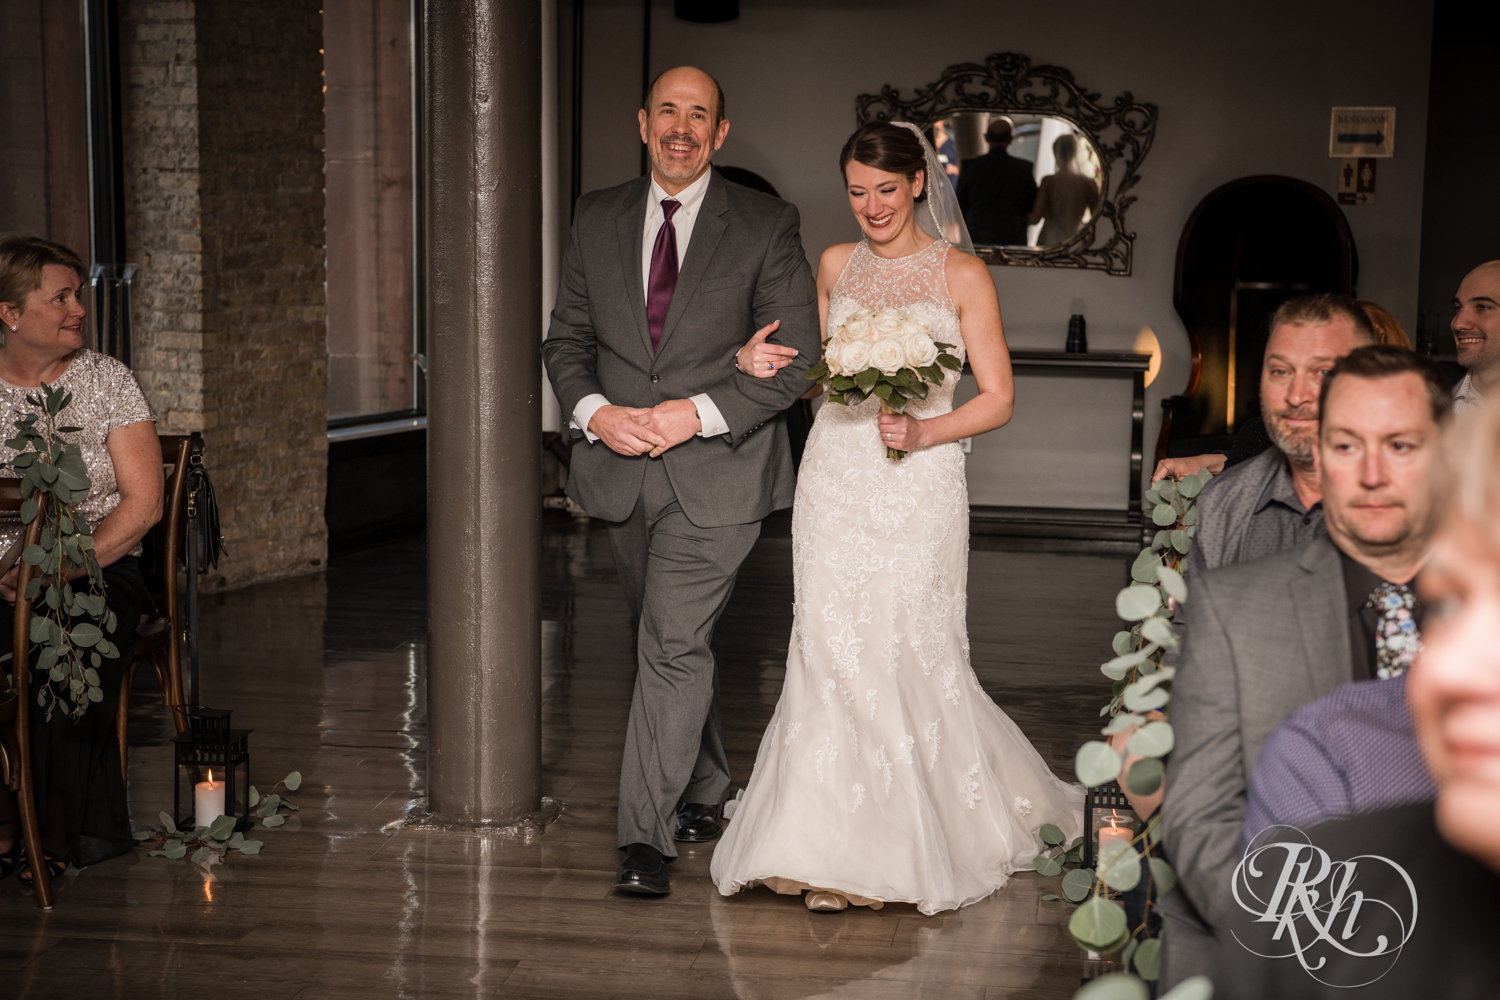 Jillian & Jared - Minnesota Wedding Photography - Lumber Exchange Event Center - RKH Images - Blog (40 of 87).jpg